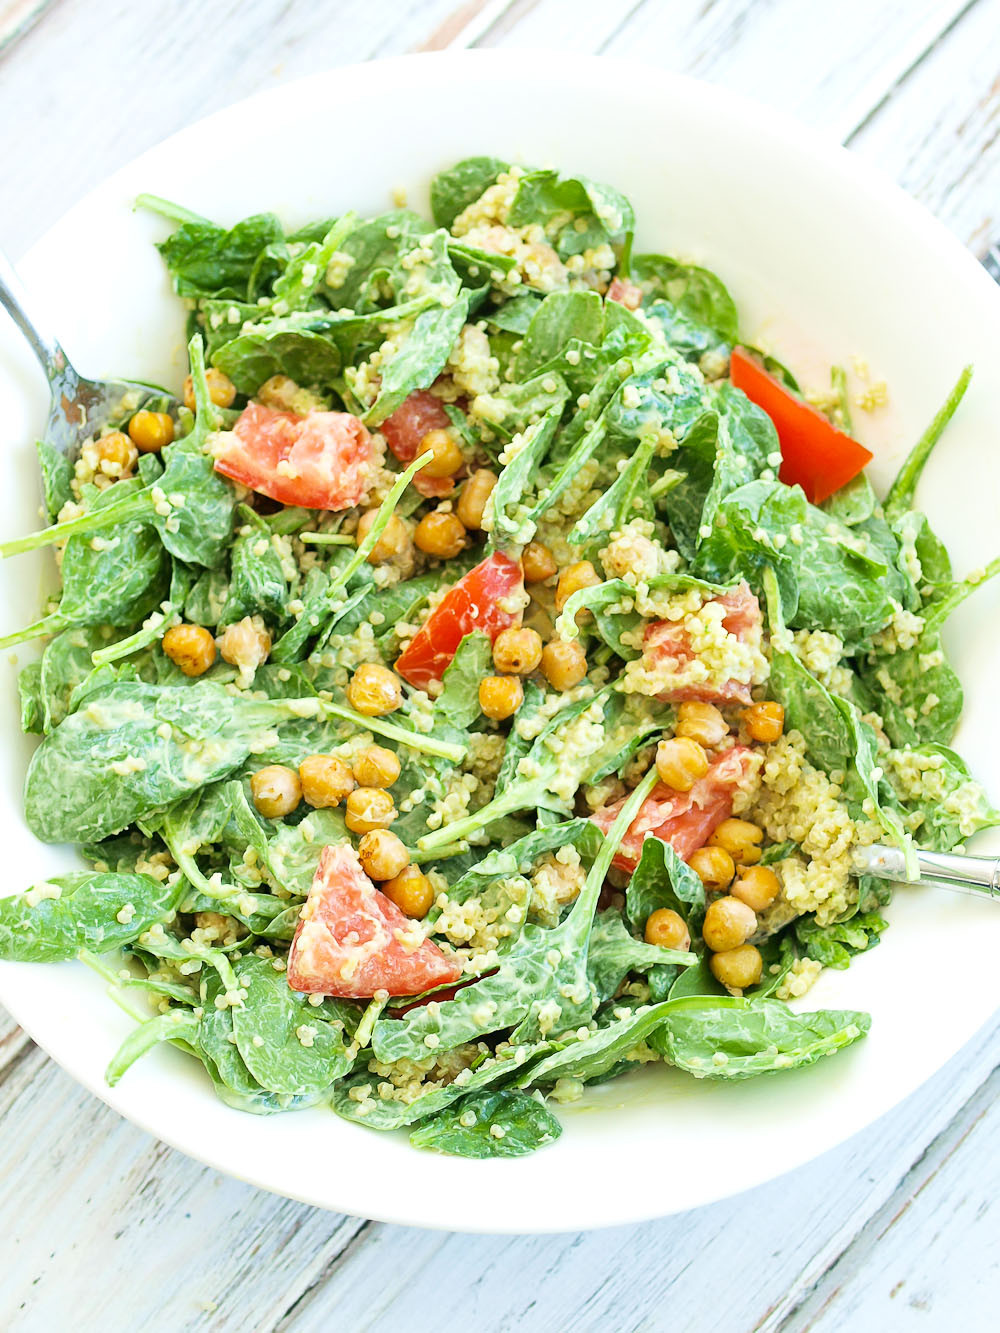 Vegetarian Spinach Salad Recipes  Loaded Spinach Salad with Creamy Avocado Basil Dressing